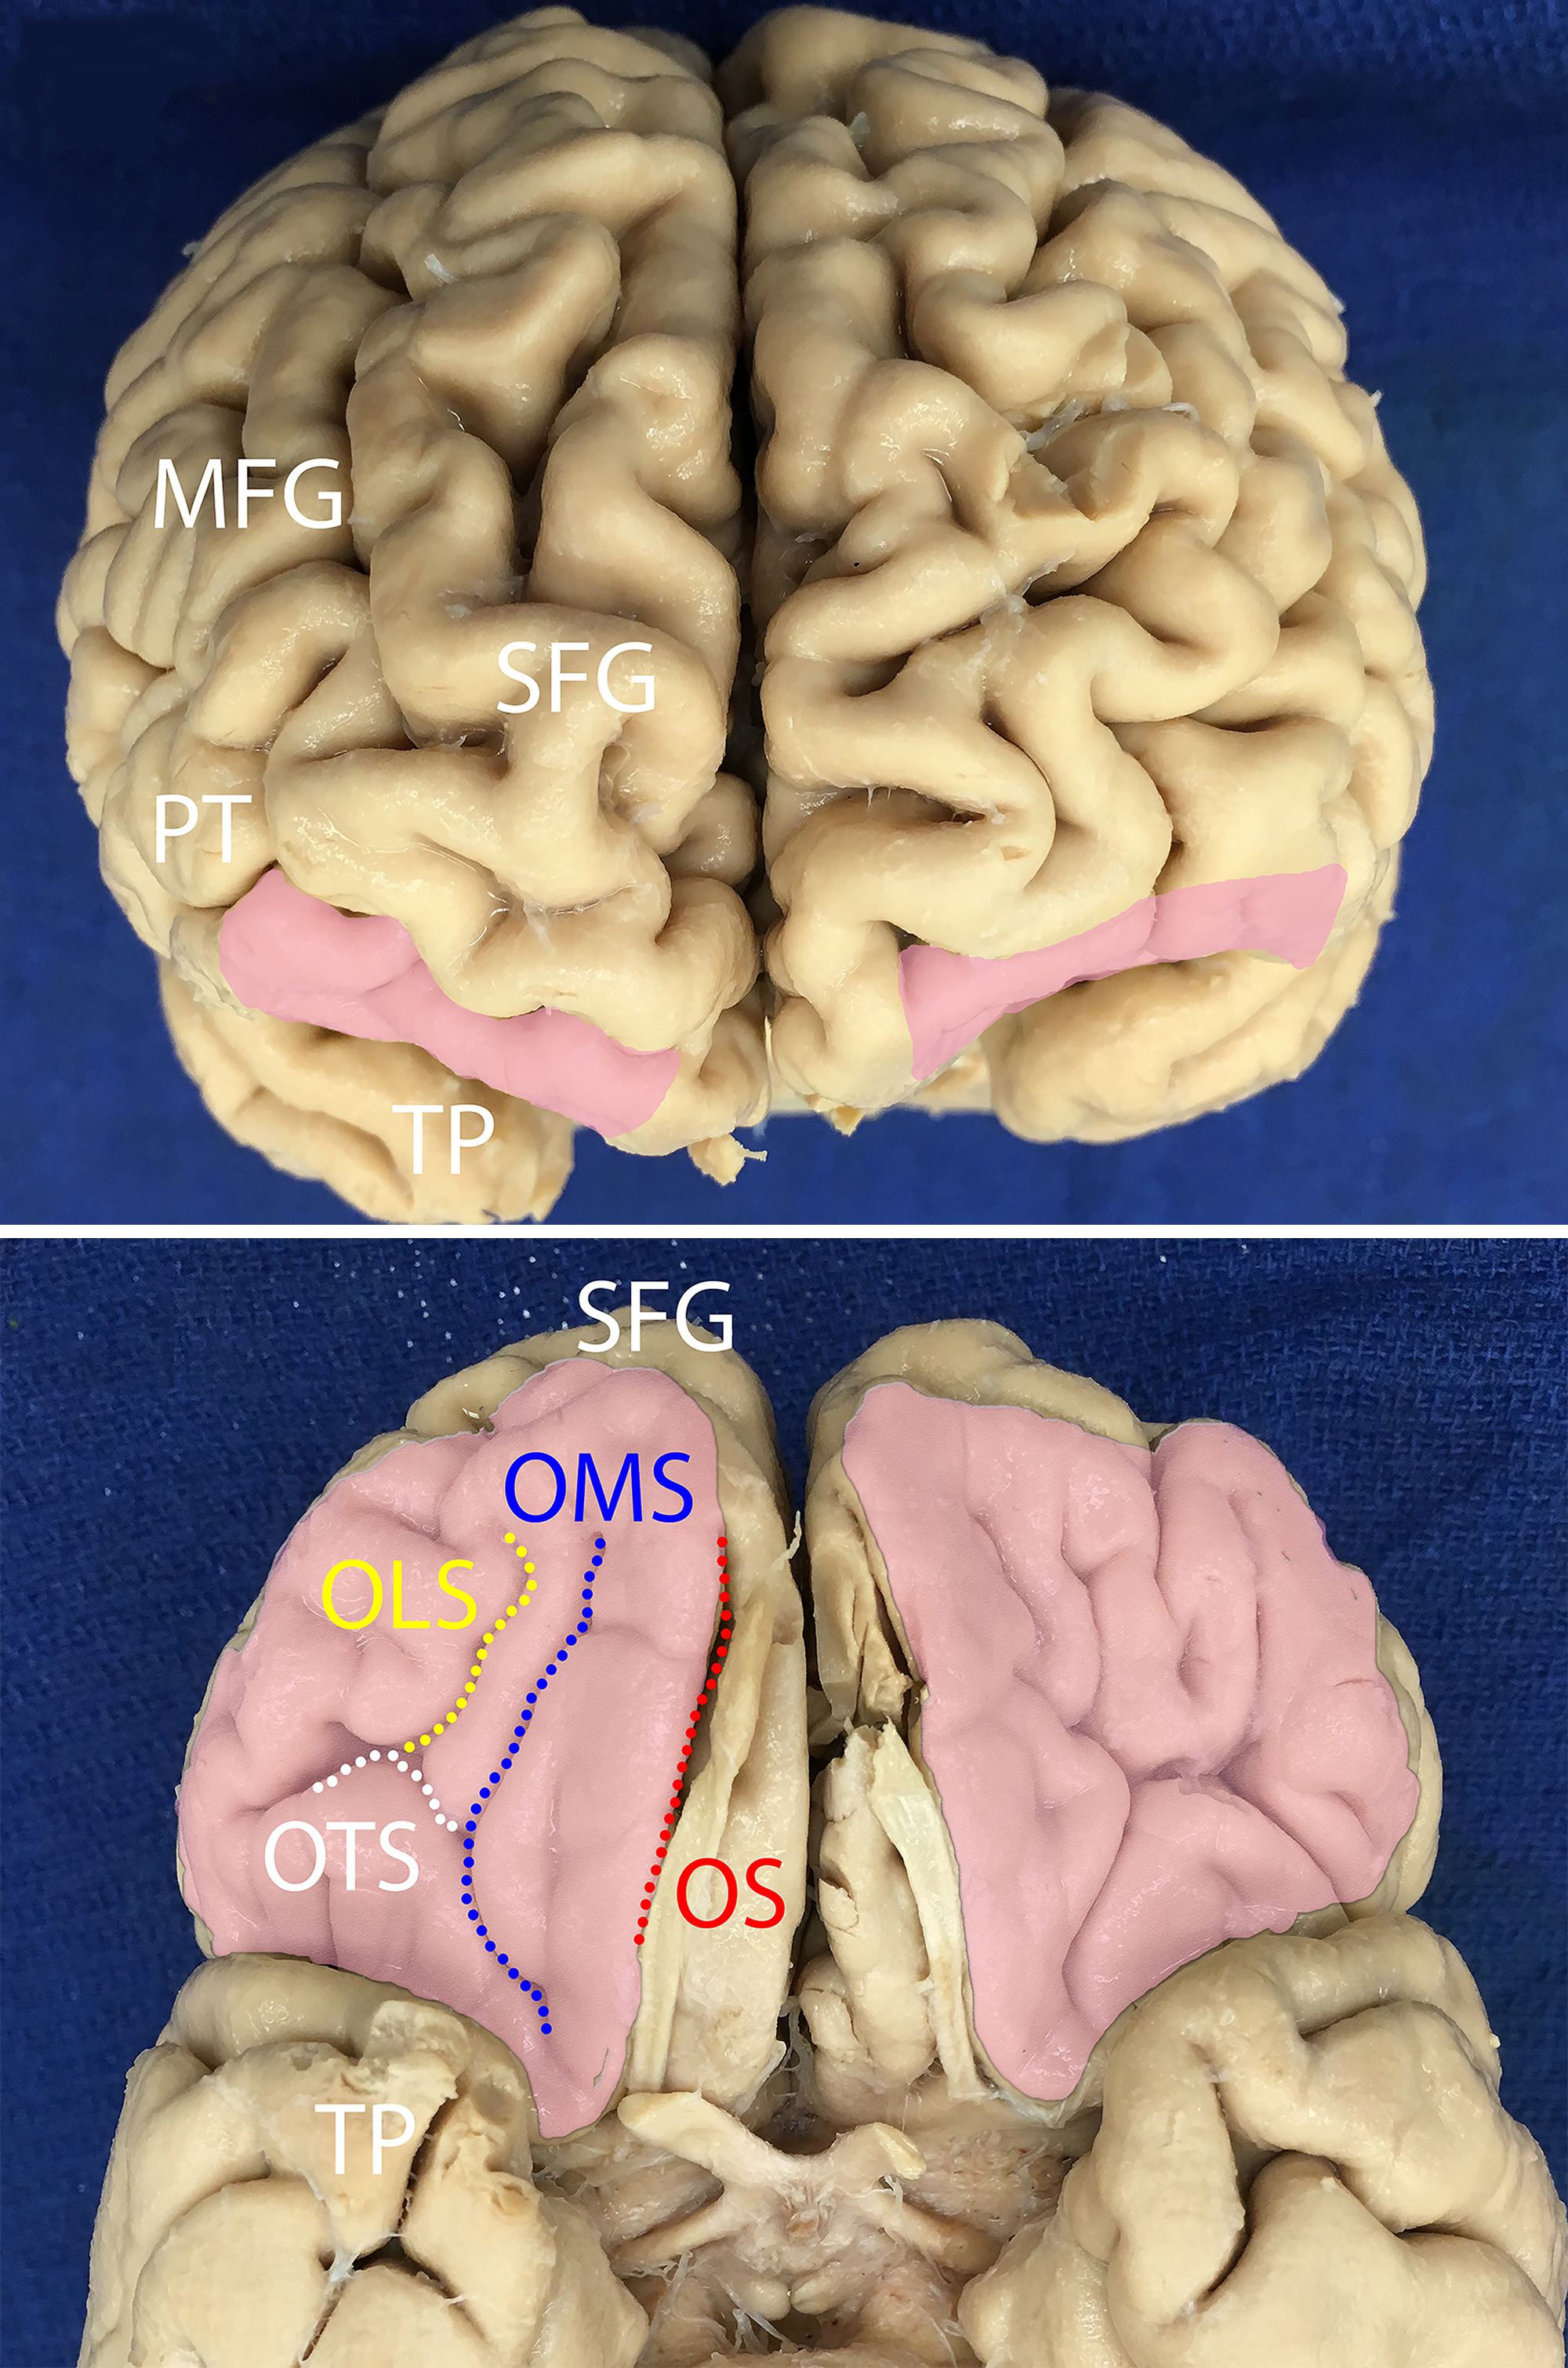 Anatomy And White Matter Connections Of The Orbitofrontal Gyrus